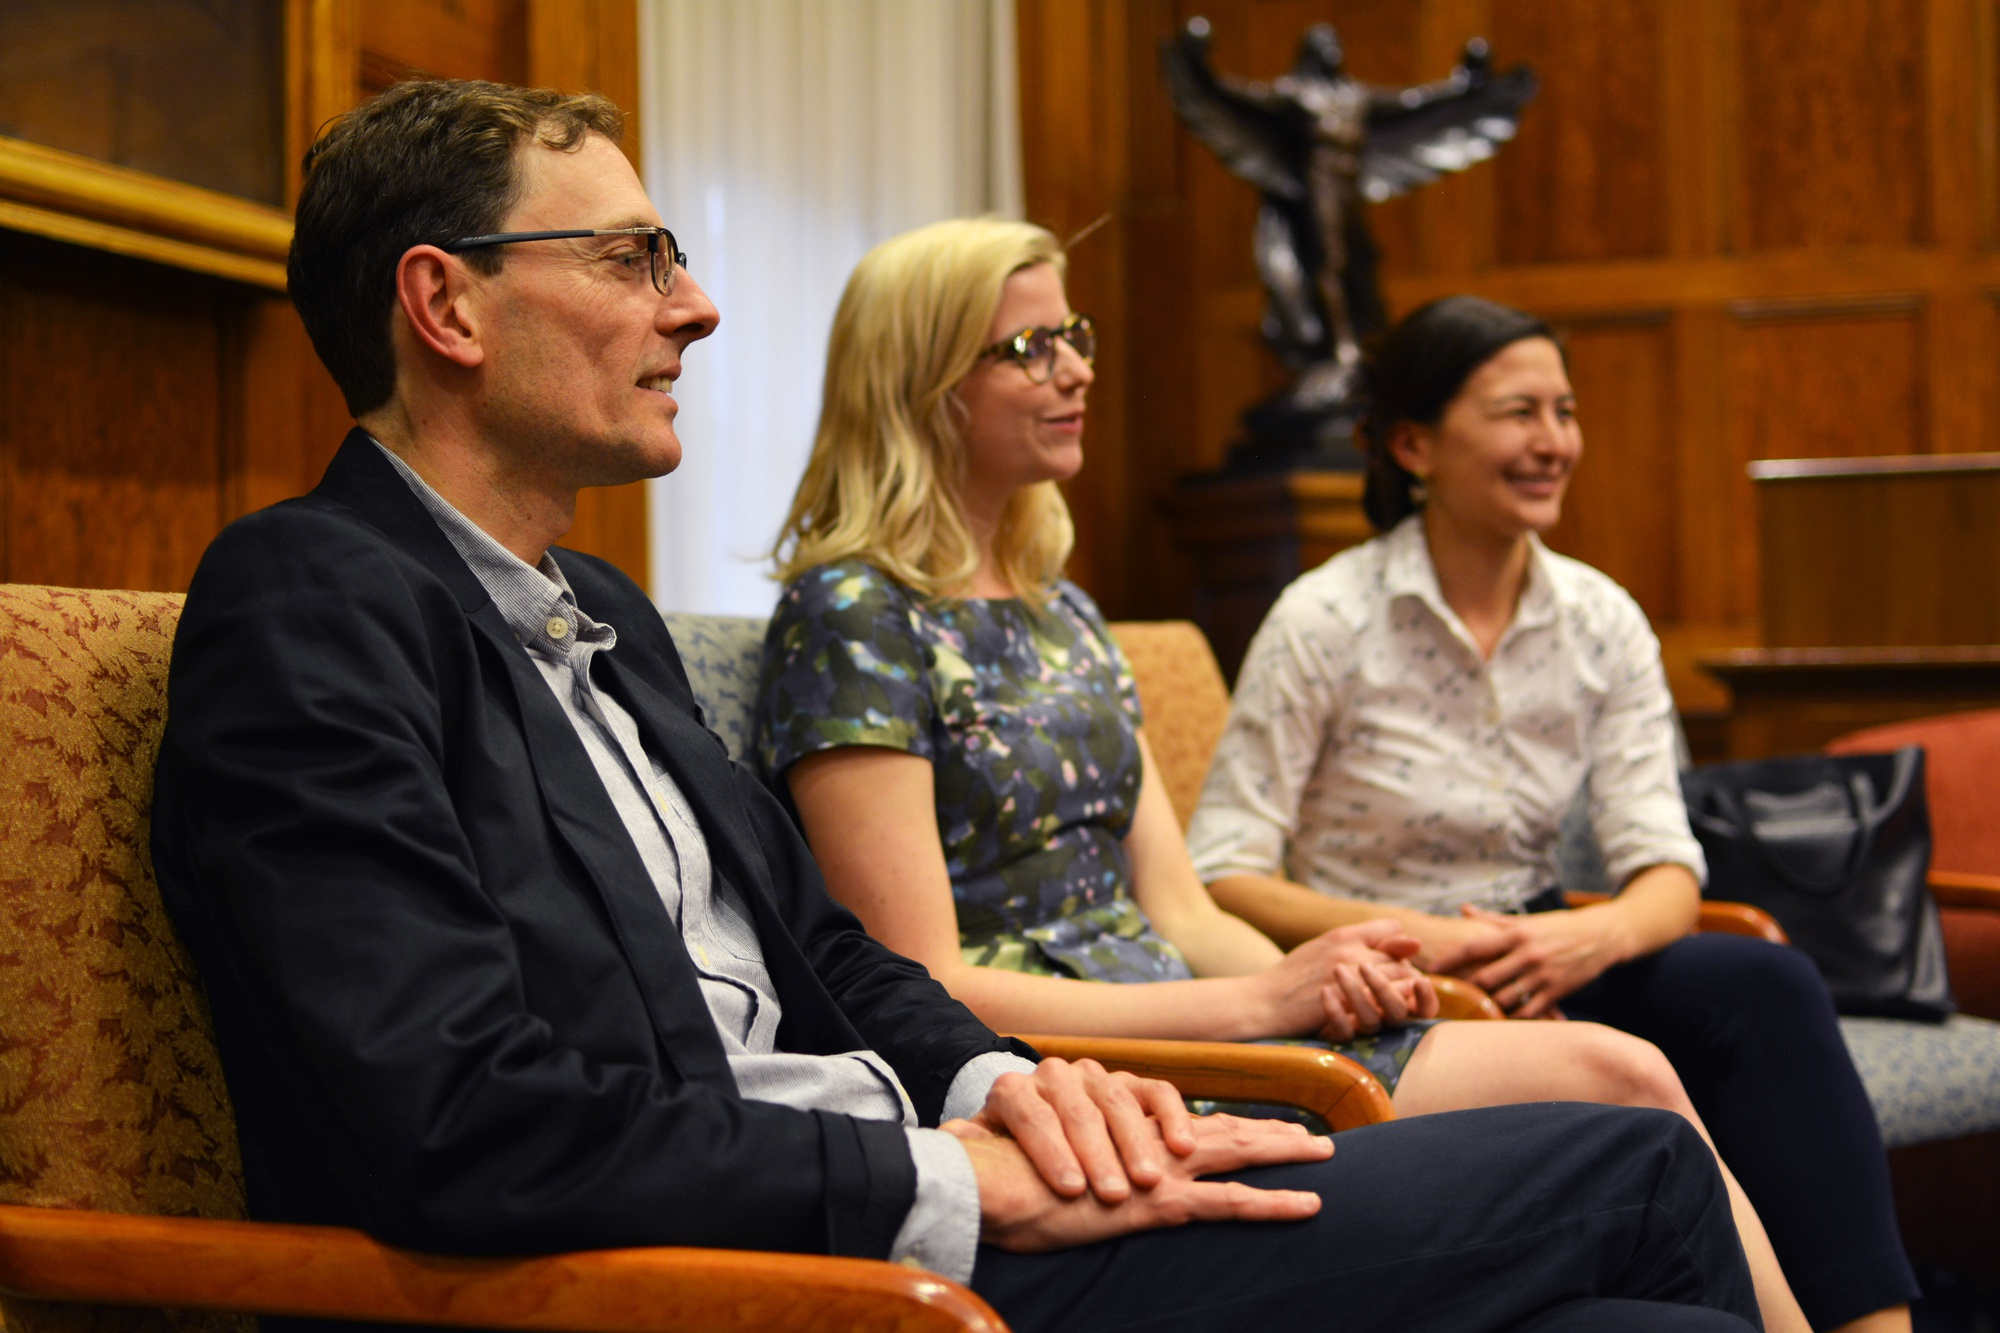 Chair of the Committee on Dramatics Prof. Martin Puchner, left, and graduate students Tarryn Li-min Chun, center, and Elizabeth M. Phillips, right, attended an open forum on the future of theater at Harvard in April.